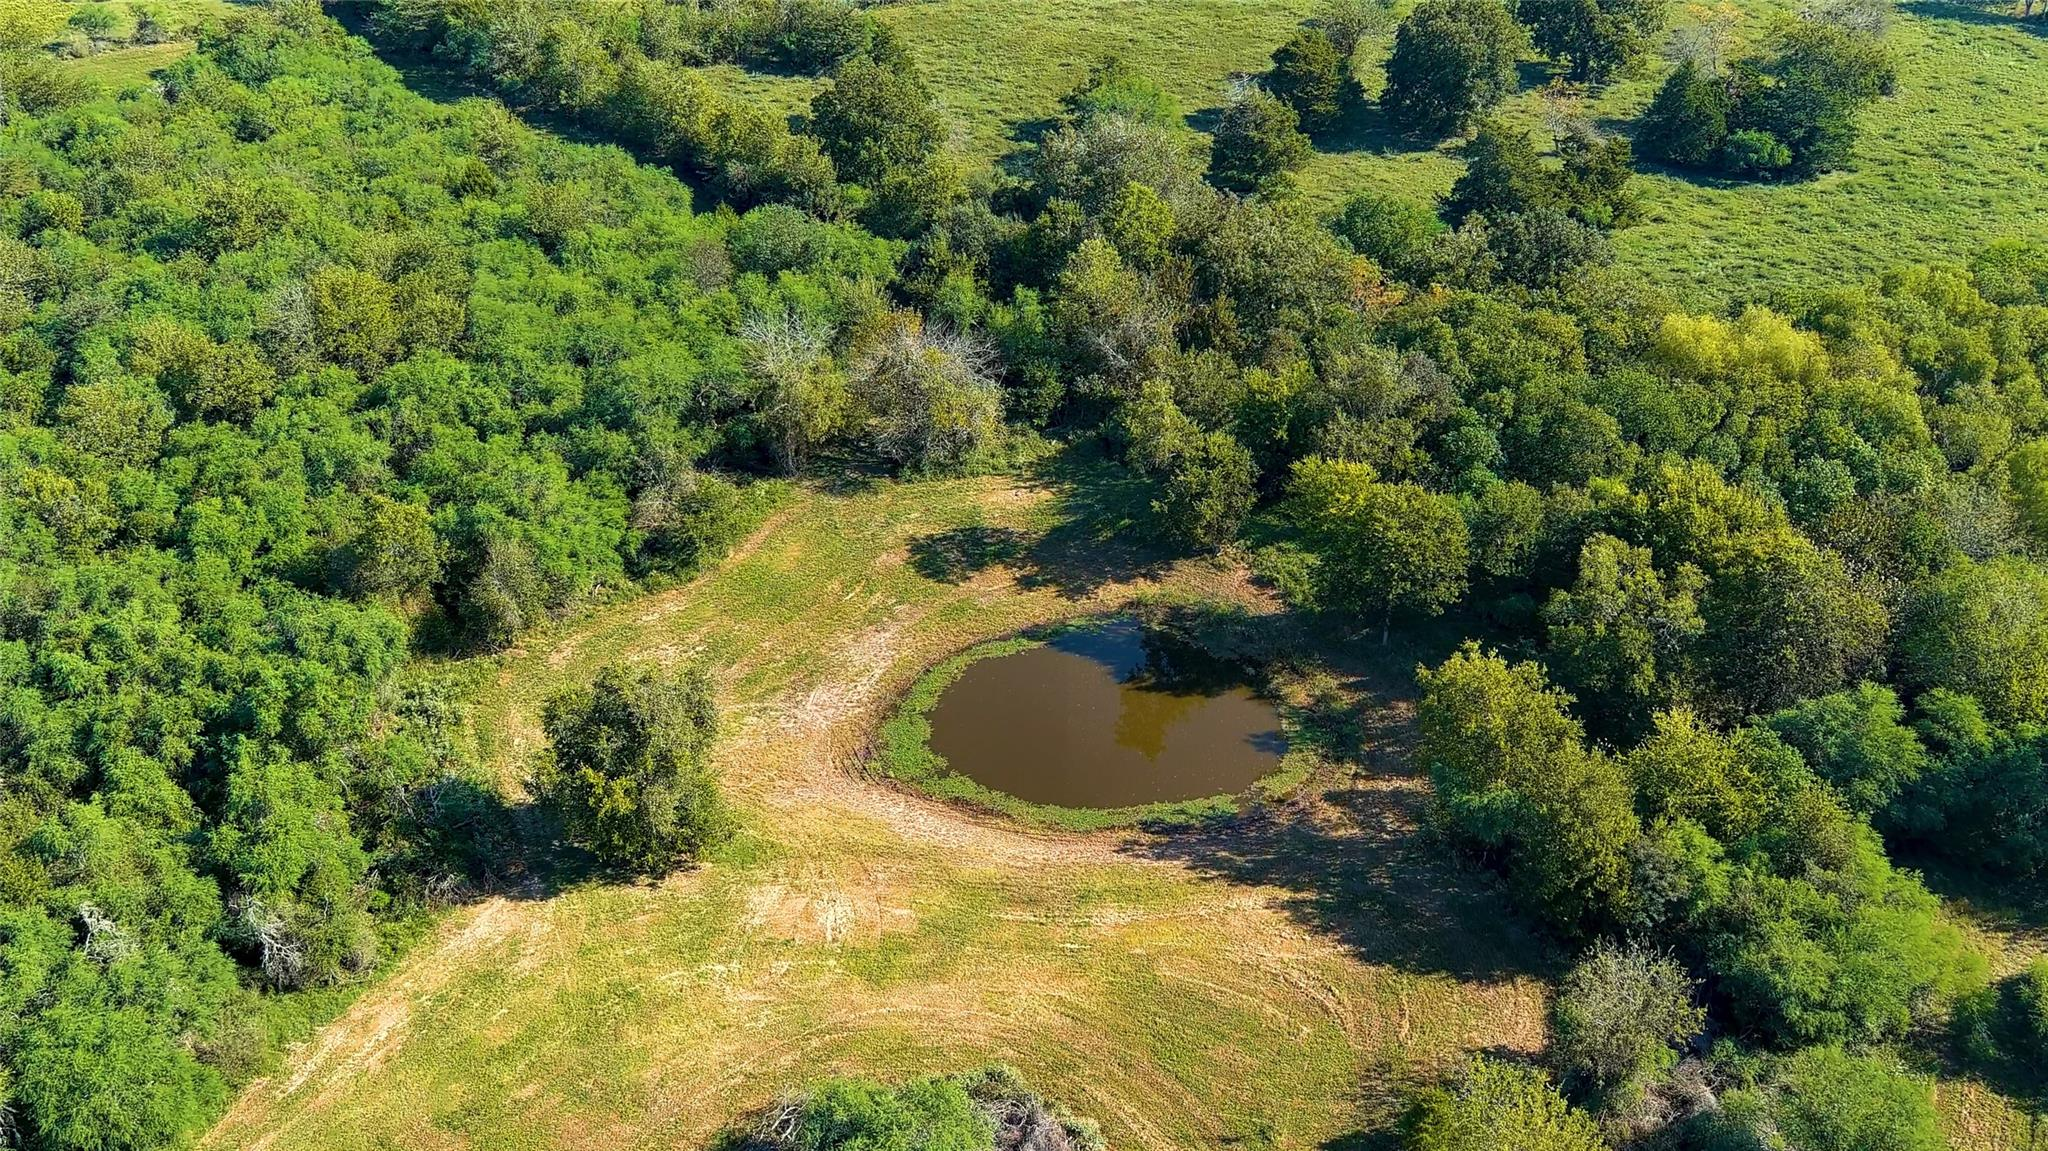 000 Nicholson Lake Road Property Photo - Chappell Hill, TX real estate listing